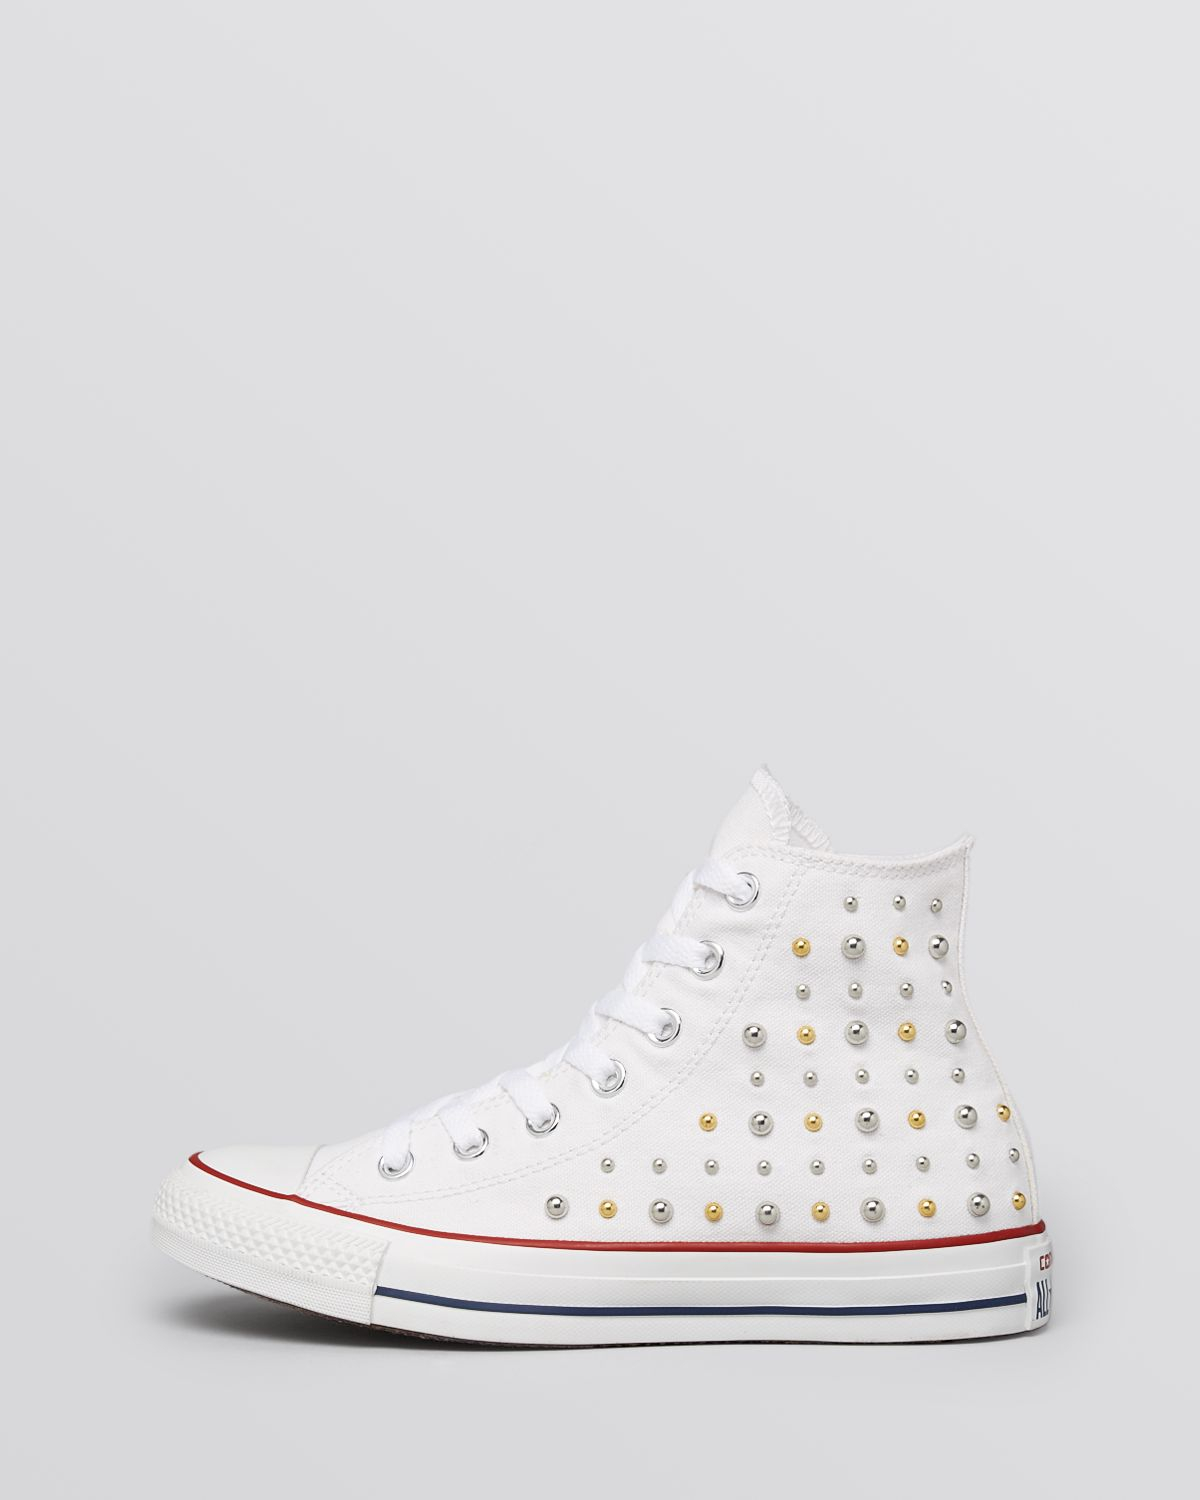 2149b4cc5710 Converse Lace Up High Top Sneakers - Canvas Studded in White - Lyst